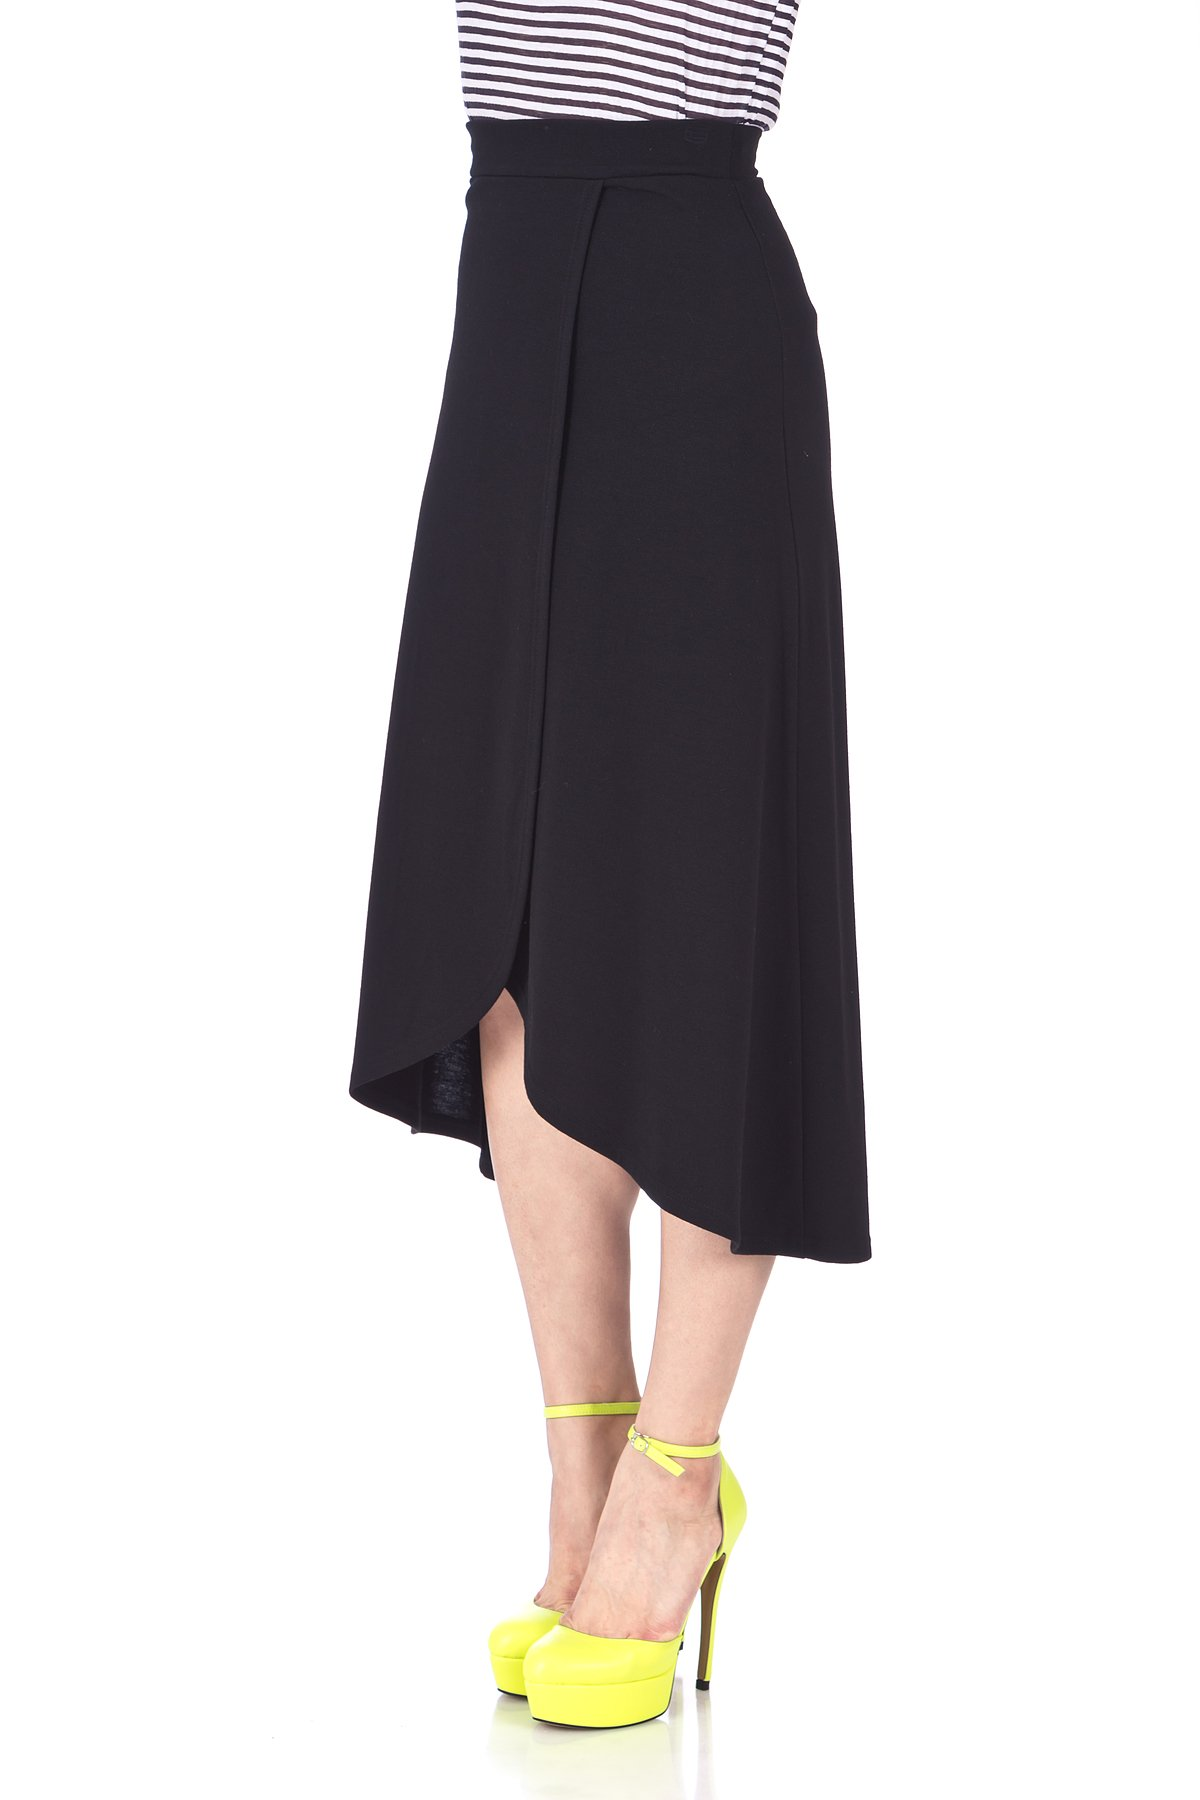 Easy Chic Wrap Style Full Flared Skater Swing Midi Long Maxi Skirt Black 05